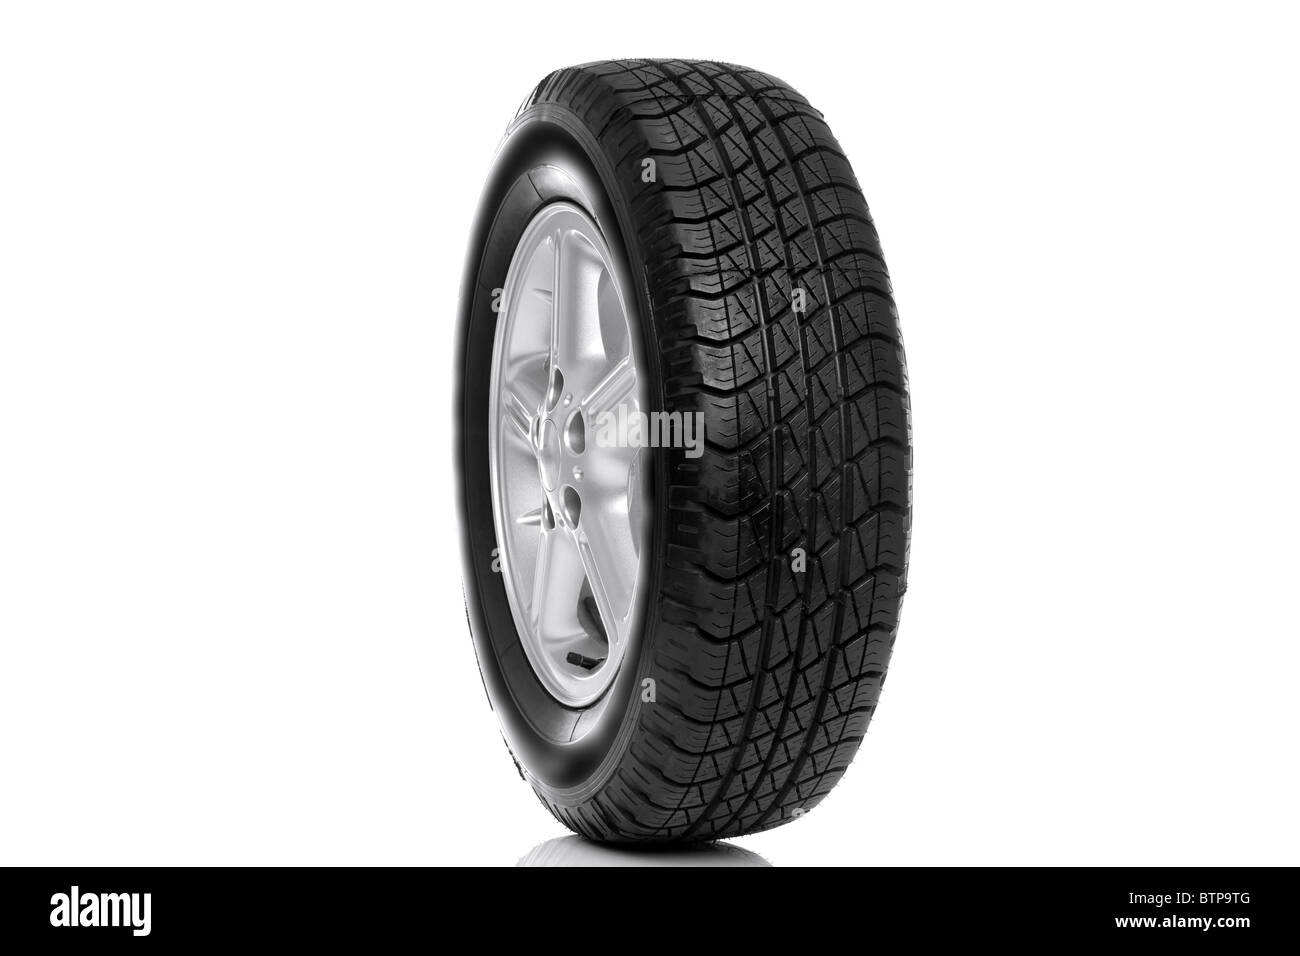 Photo of a car tyre (tire) on a five spoke alloy wheel isolated on a white background - Stock Image